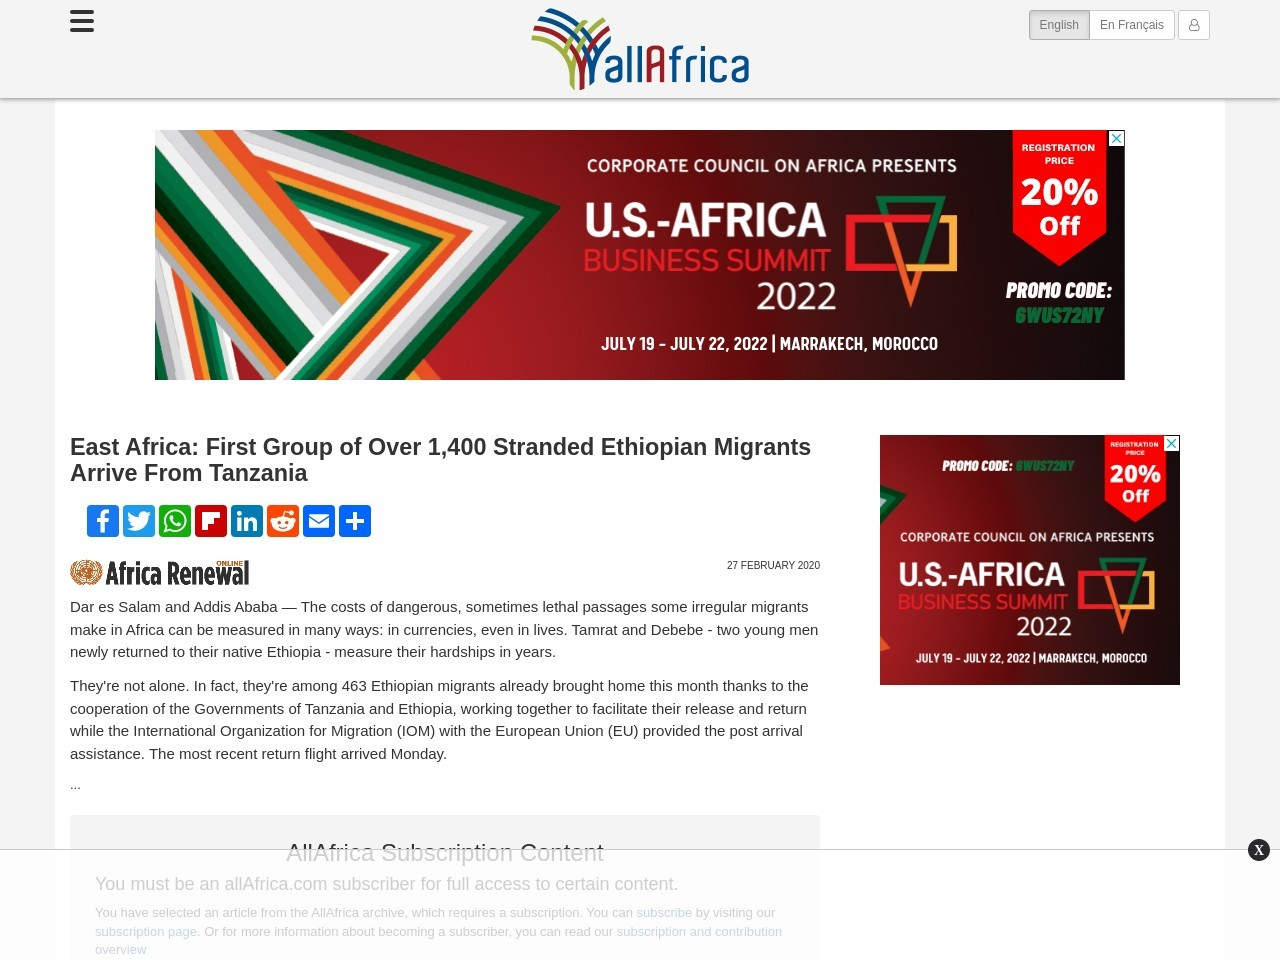 East Africa: First Group of Over 1,400 Stranded Ethiopian Migrants Arrive From Tanzania